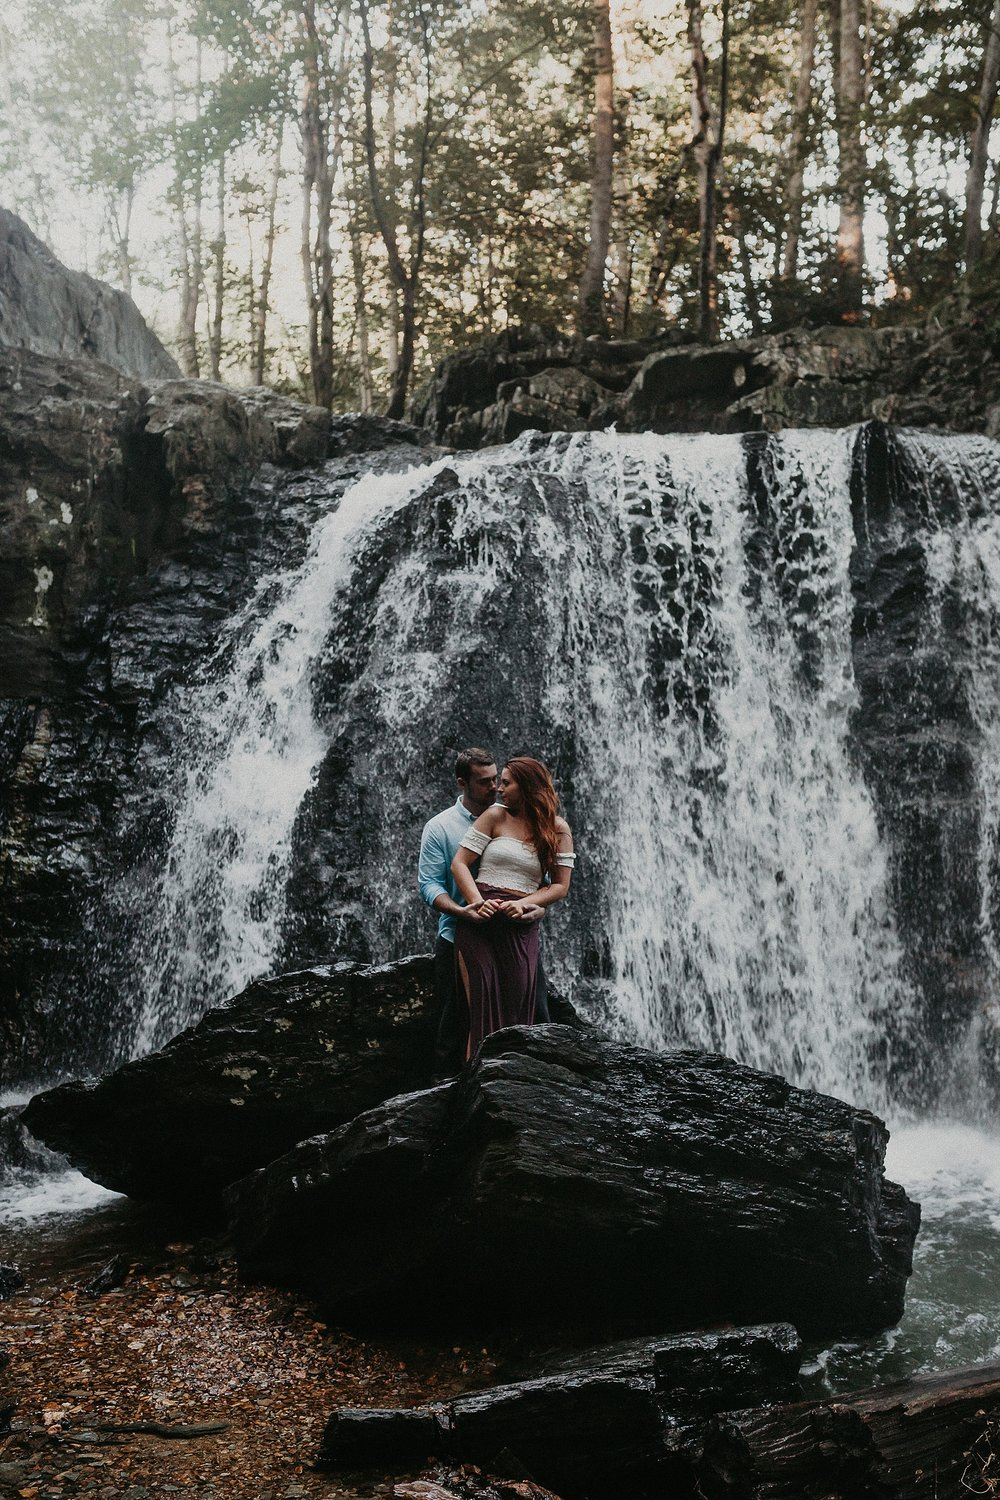 Summer Evening Boho Couples Session at Kilgore Falls Waterfalls in Pylesville Maryland_0064.jpg